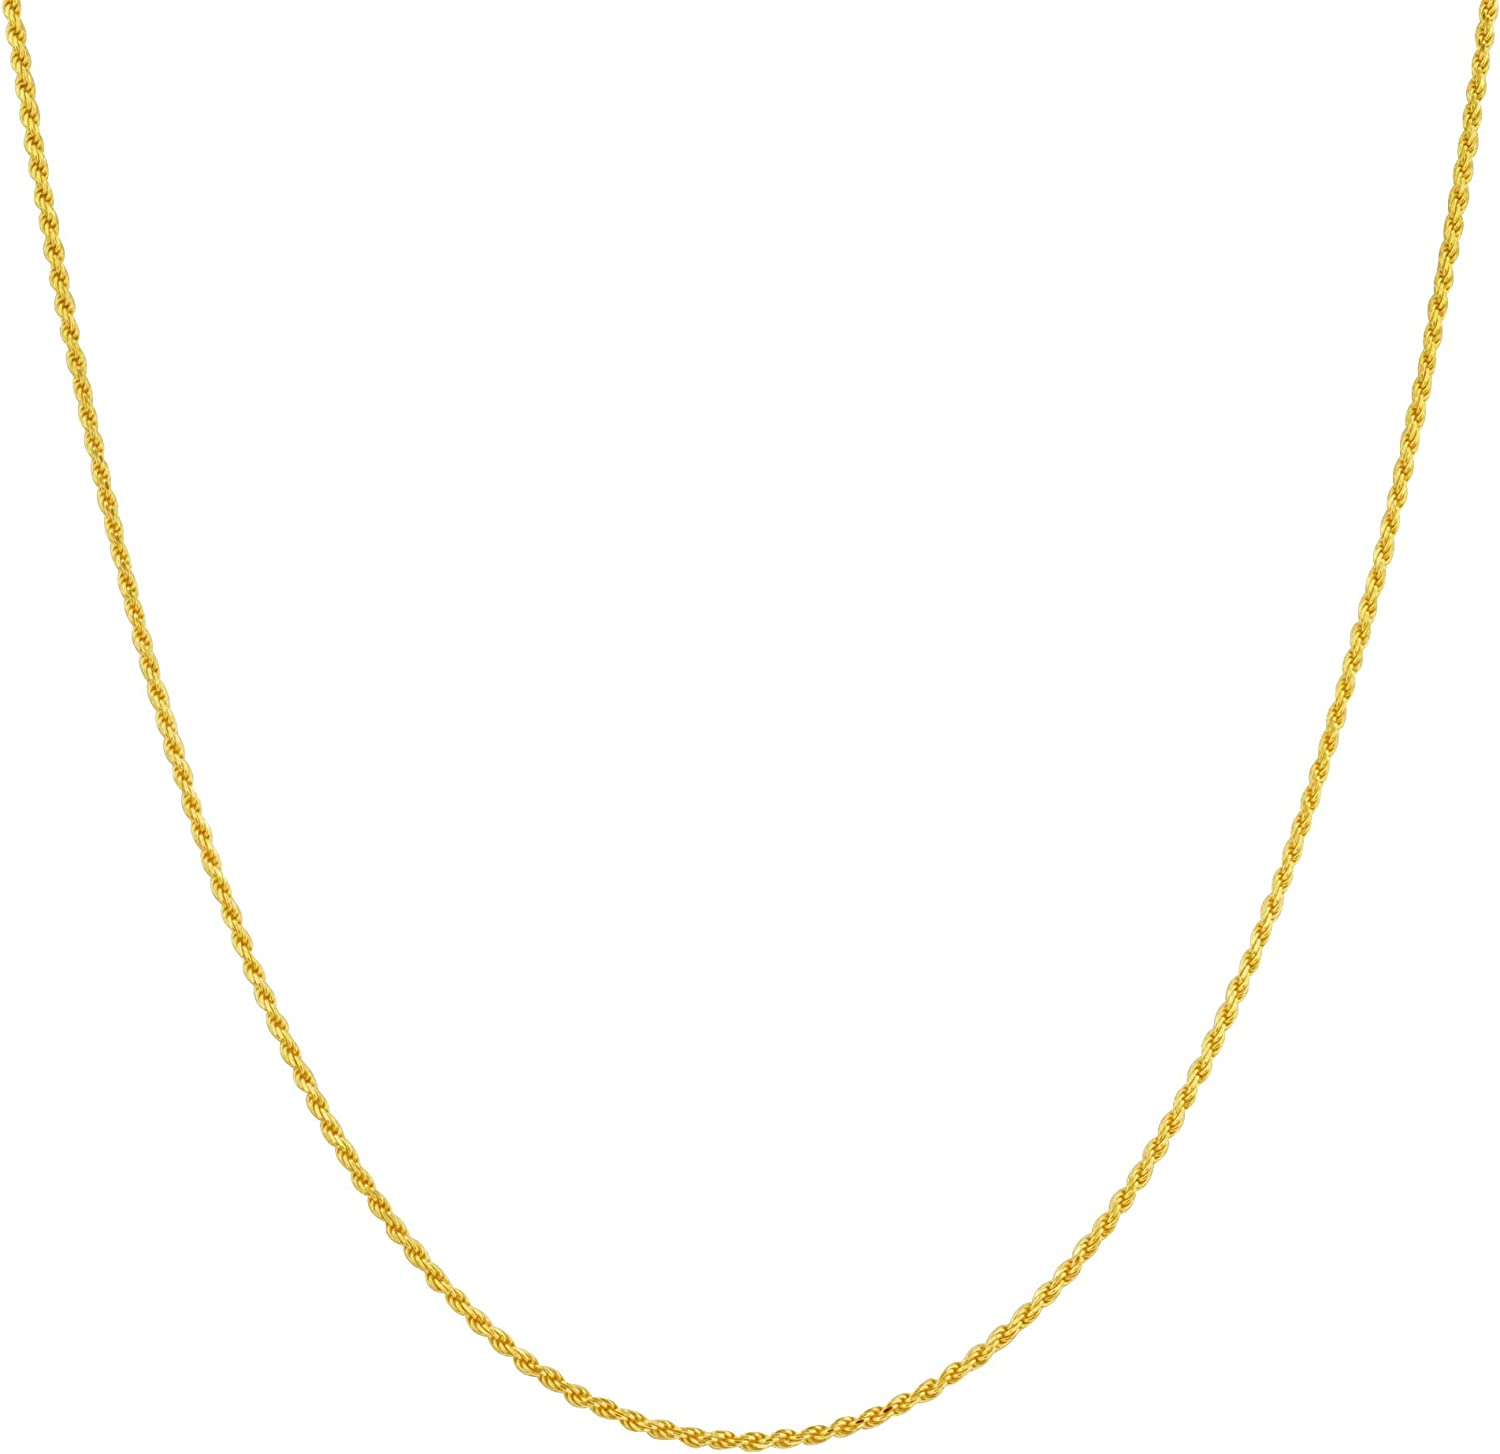 14k Gold Over 925 Sterling Silver Italian BOX CHAIN necklace 0.7mm